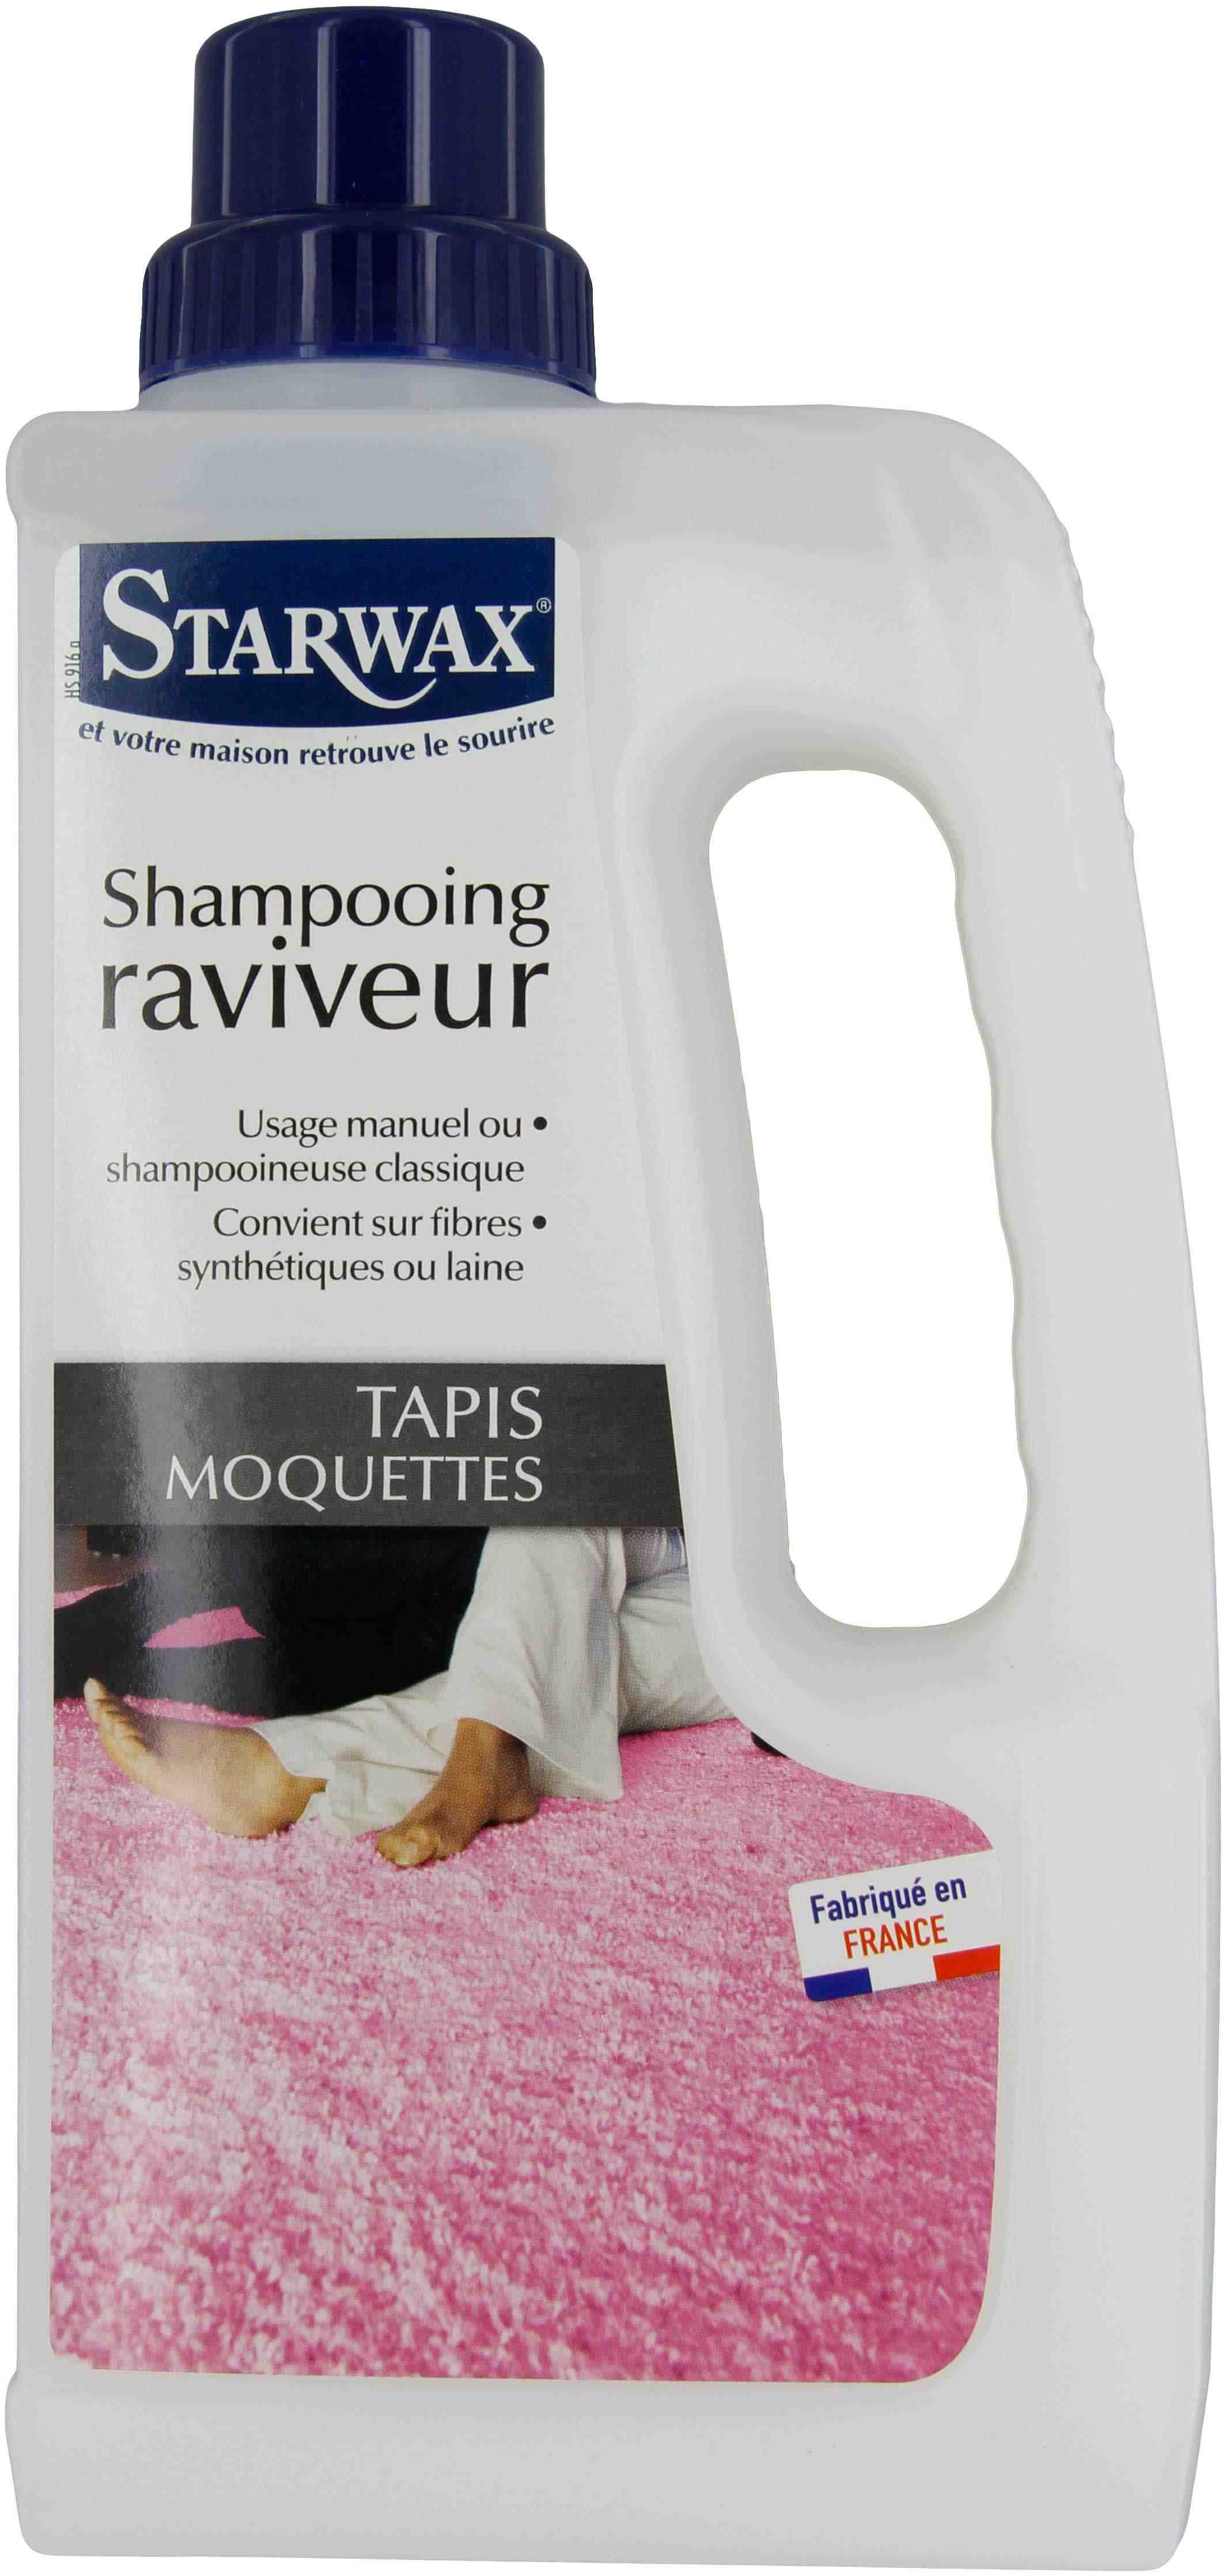 Shampooing raviveur Tapis-moquettes Starwax